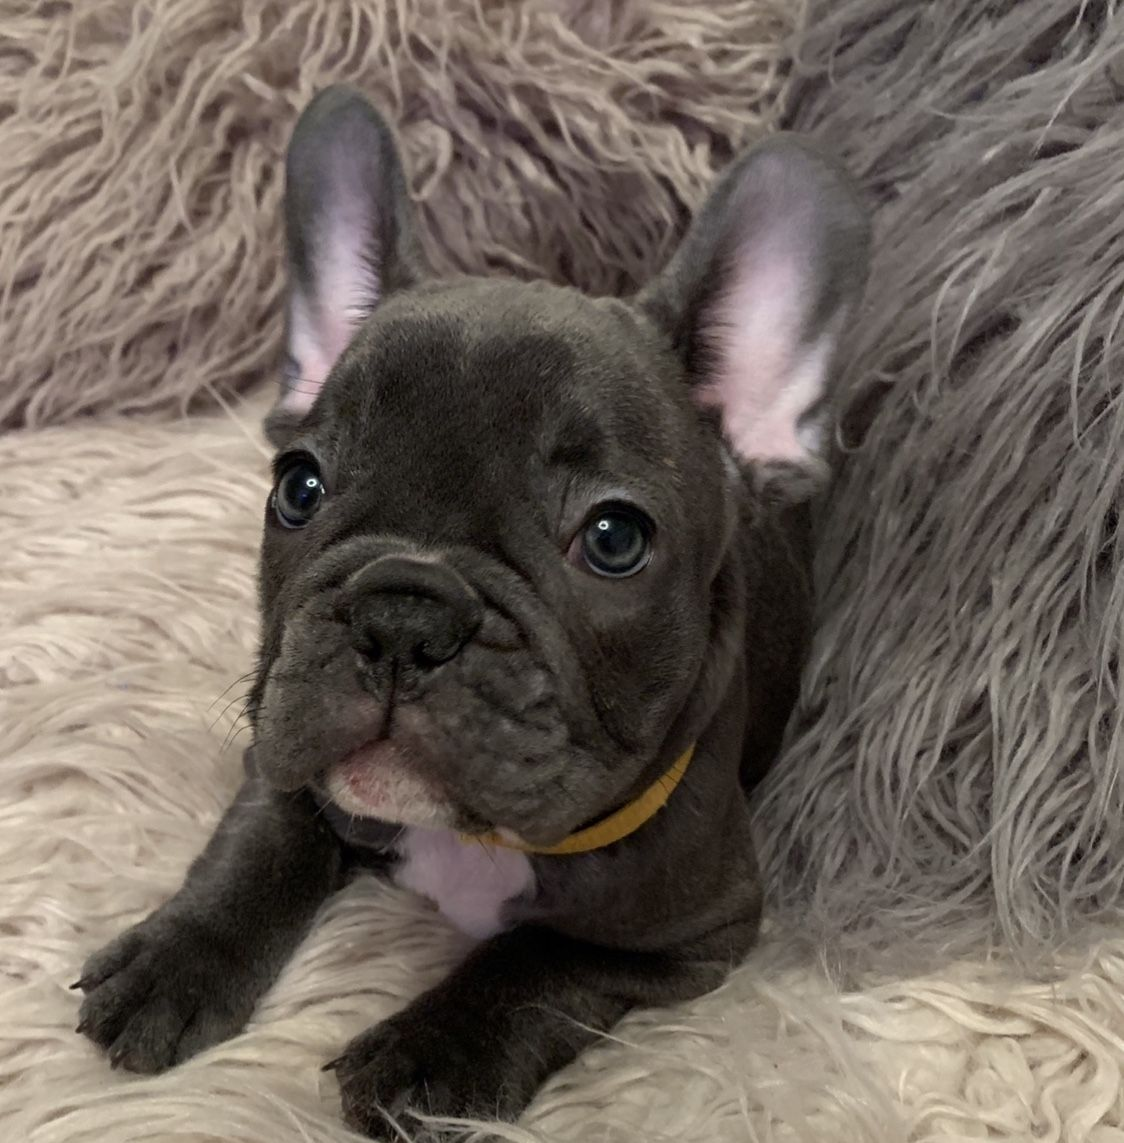 cute pup available @PetsatHome, @CuteAnimals181 @frenchbulldog79 ,@FrenchBulls ,@24kFrenchies ,@DreFrench1 ,@PetsatHome @PetShopity<br>http://pic.twitter.com/oHRg3S20P7